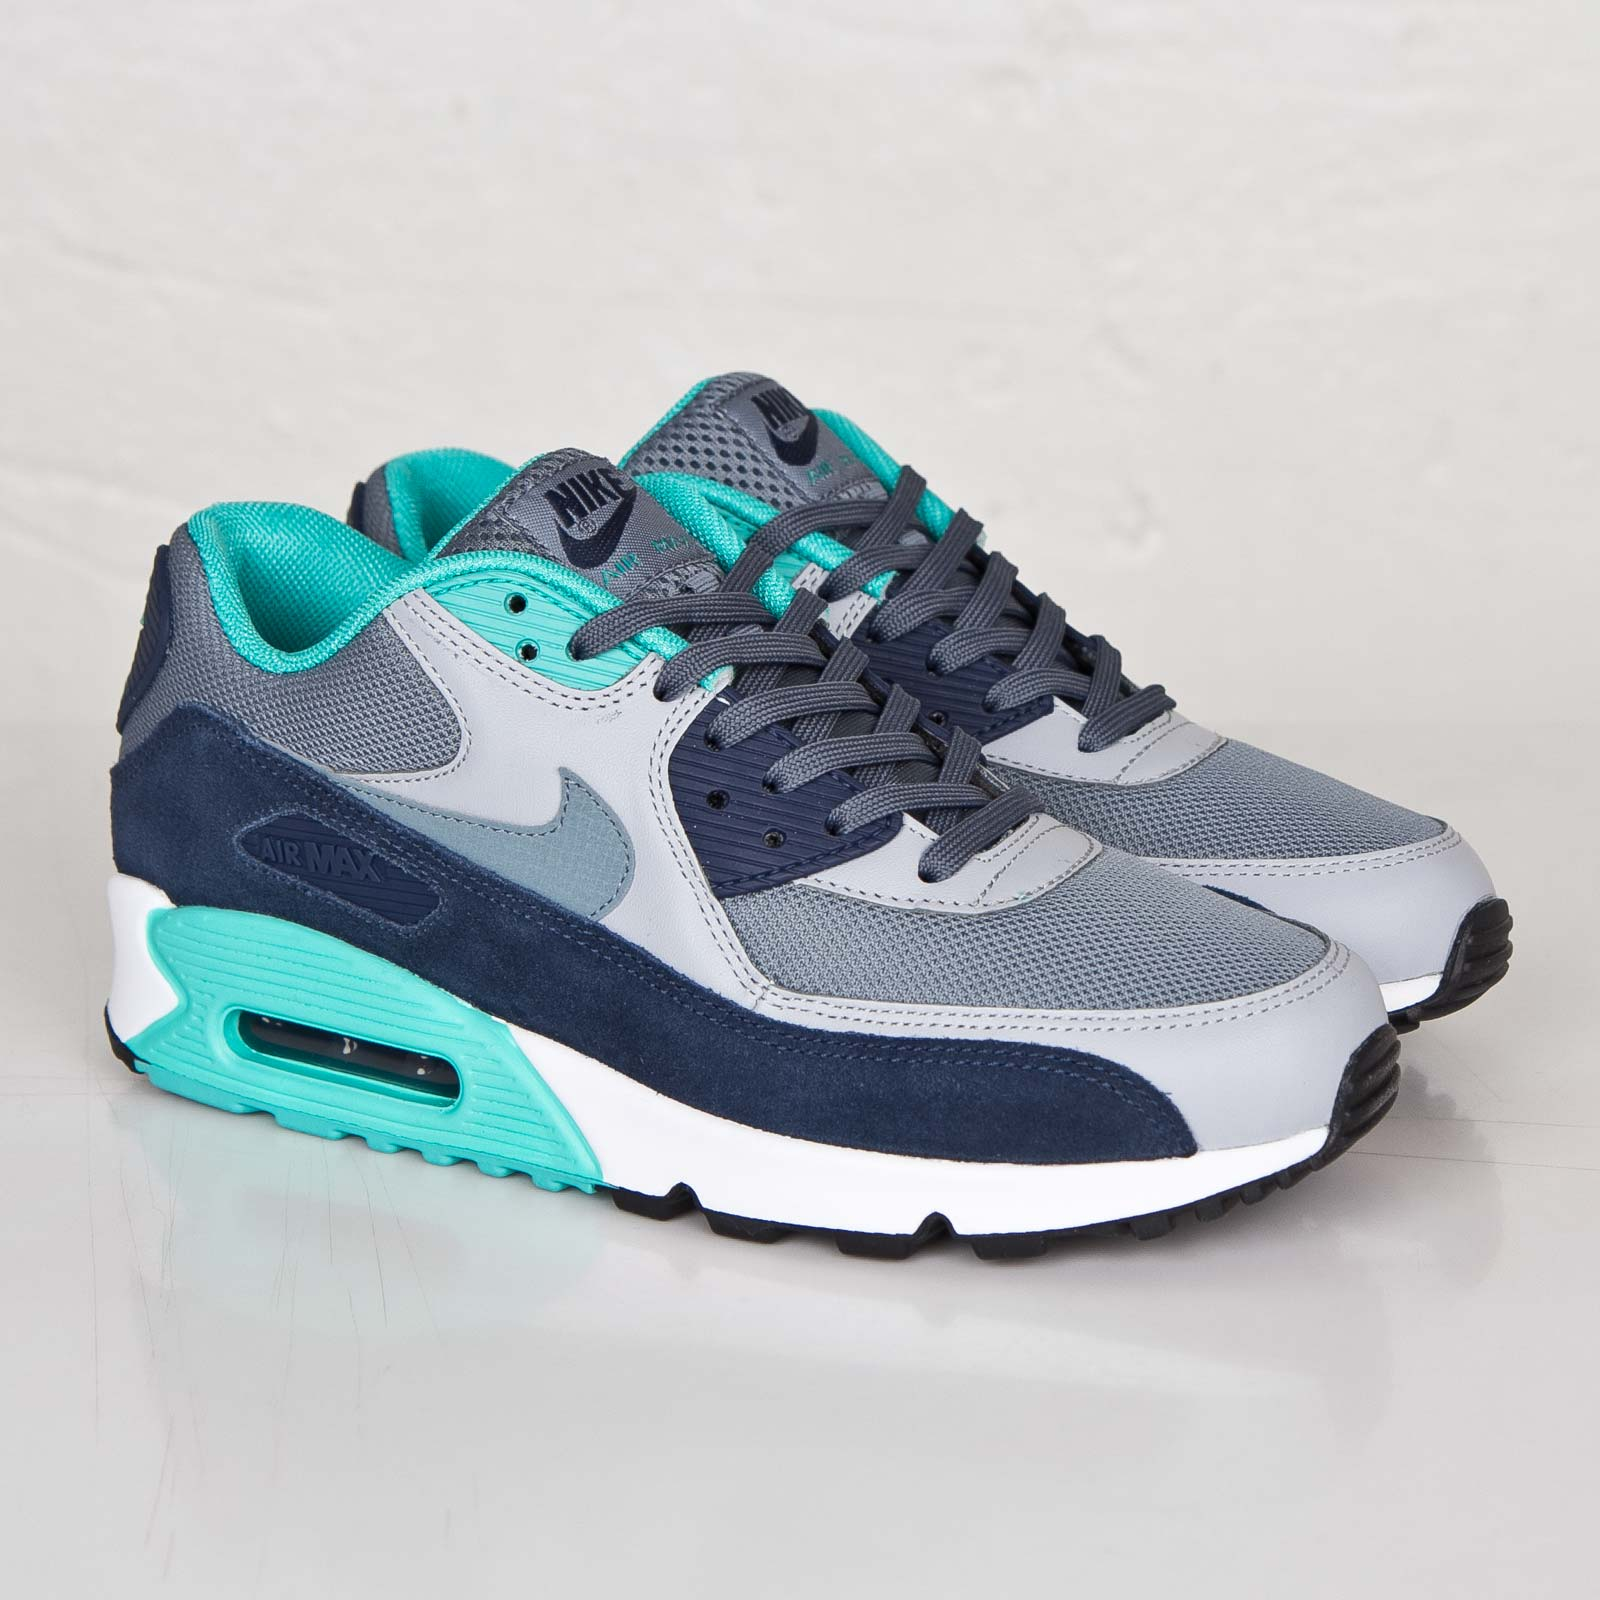 Nike Air Max 90 Essential 537384 033 Grau,Türkis , 45.5